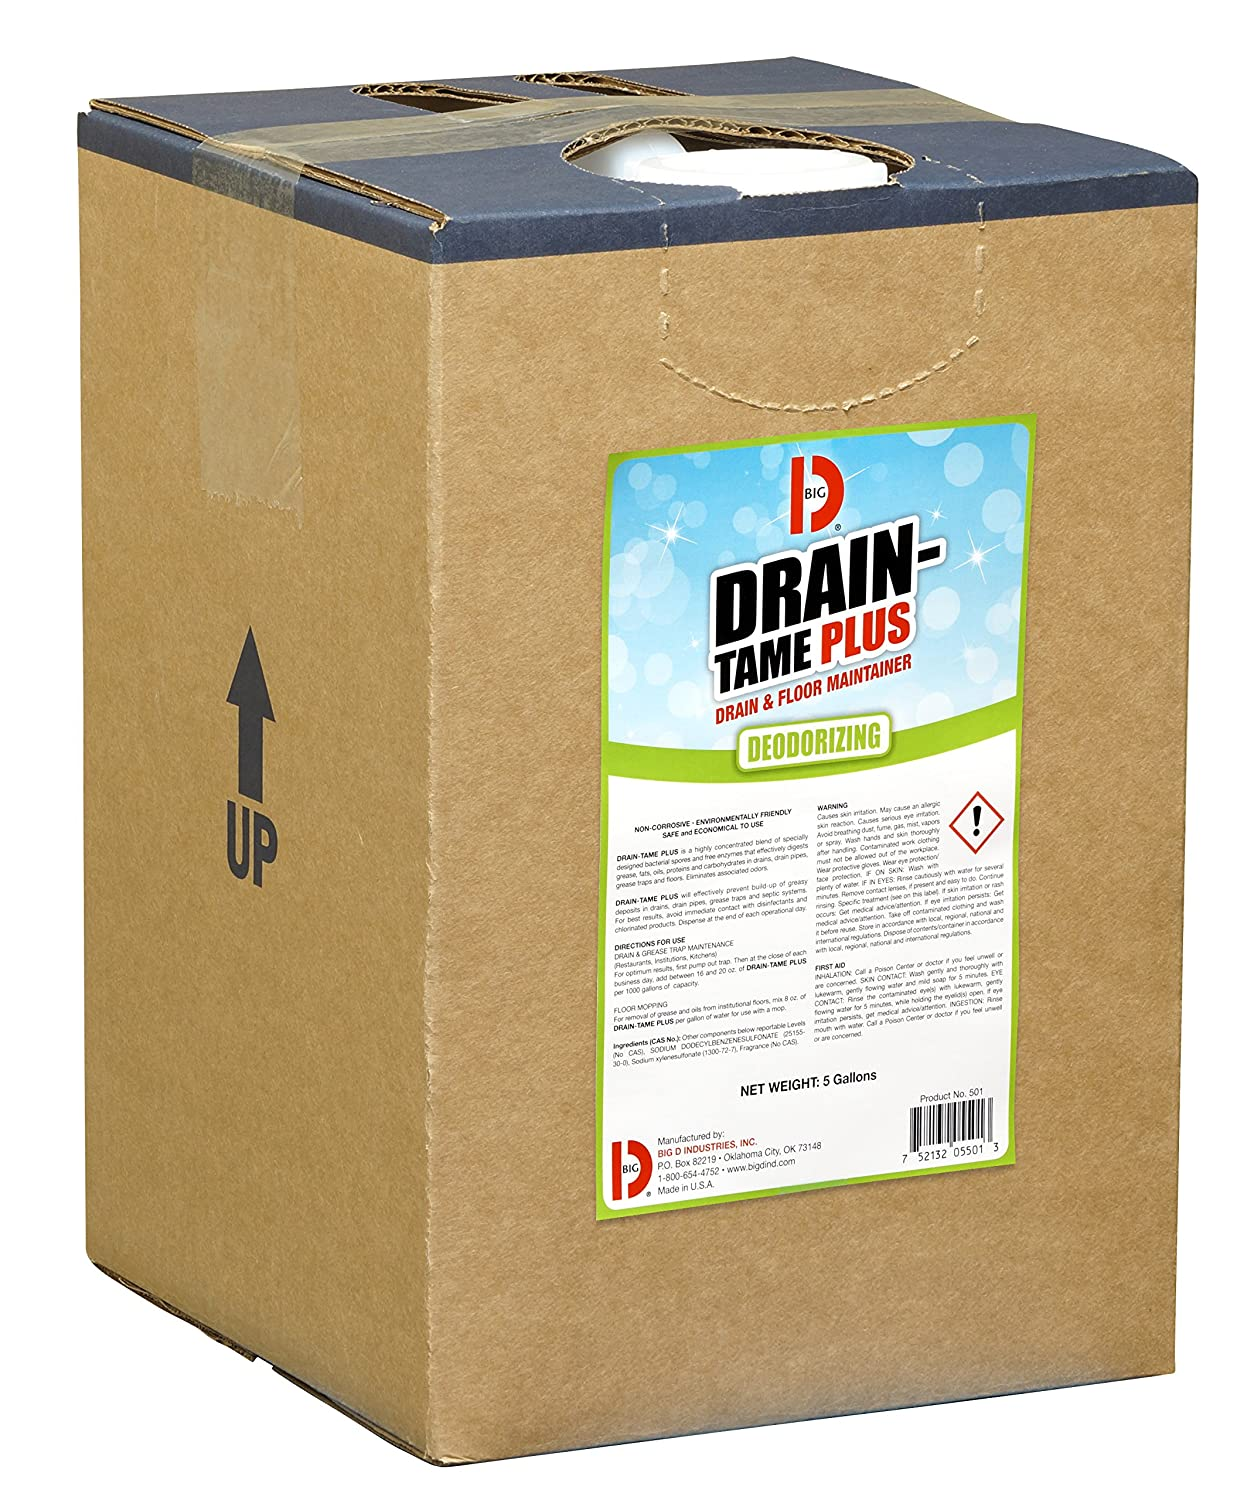 Big D 5501 Drain Tame Plus Drain Amp Floor Maintainer 5